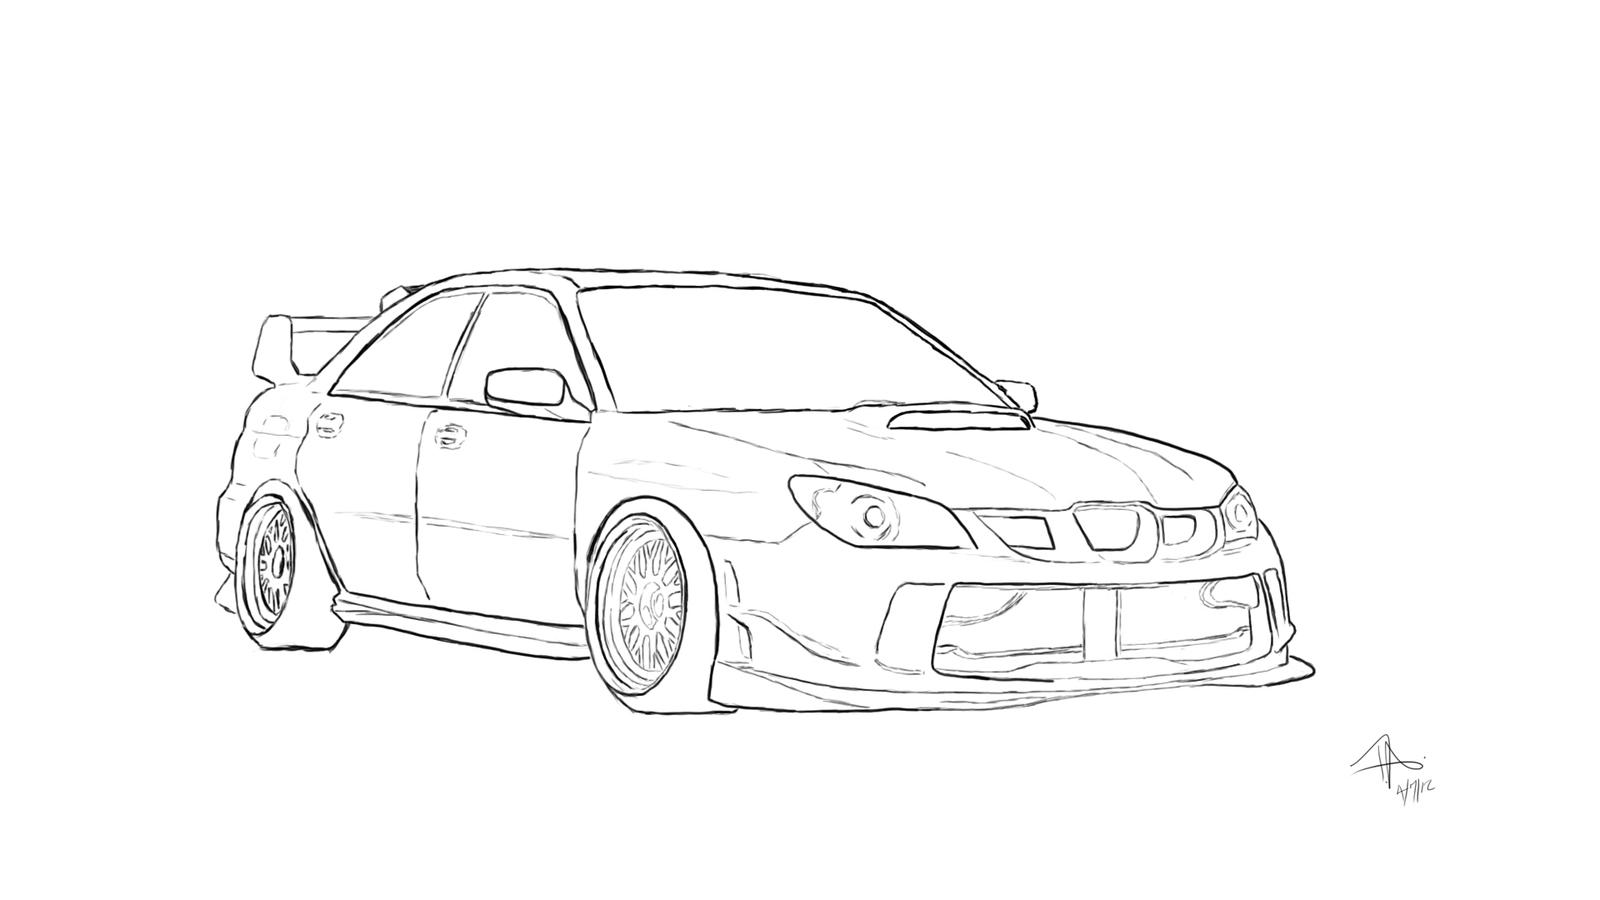 Subaru Sketch 309934814: Subaru Boxer Engine Is Good At Goccuoi.net